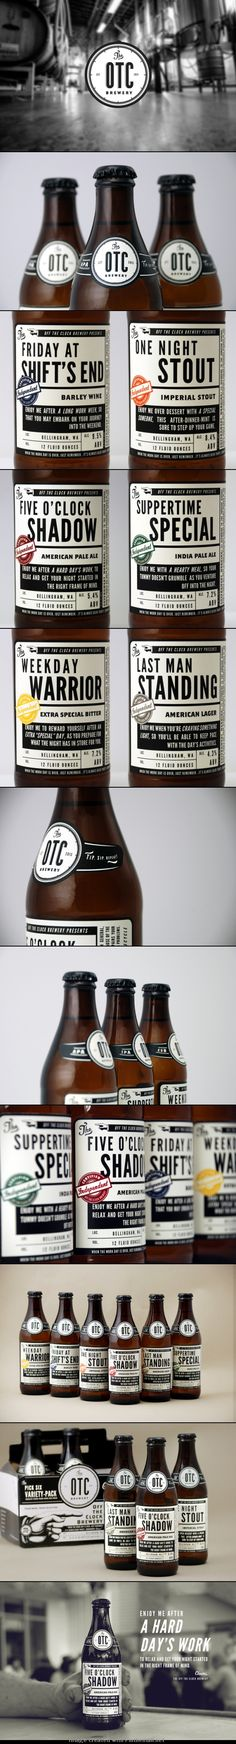 "James J. Miller Design was tasked to design the packaging for The OTC Brewery. The OTC, or ""Off the Clock"" Brewery is an independent craft-beer brewing company to be located in Bellingham, WA. Its stark, contrasty design and creative copywriti - created via http://pinthemall.net"